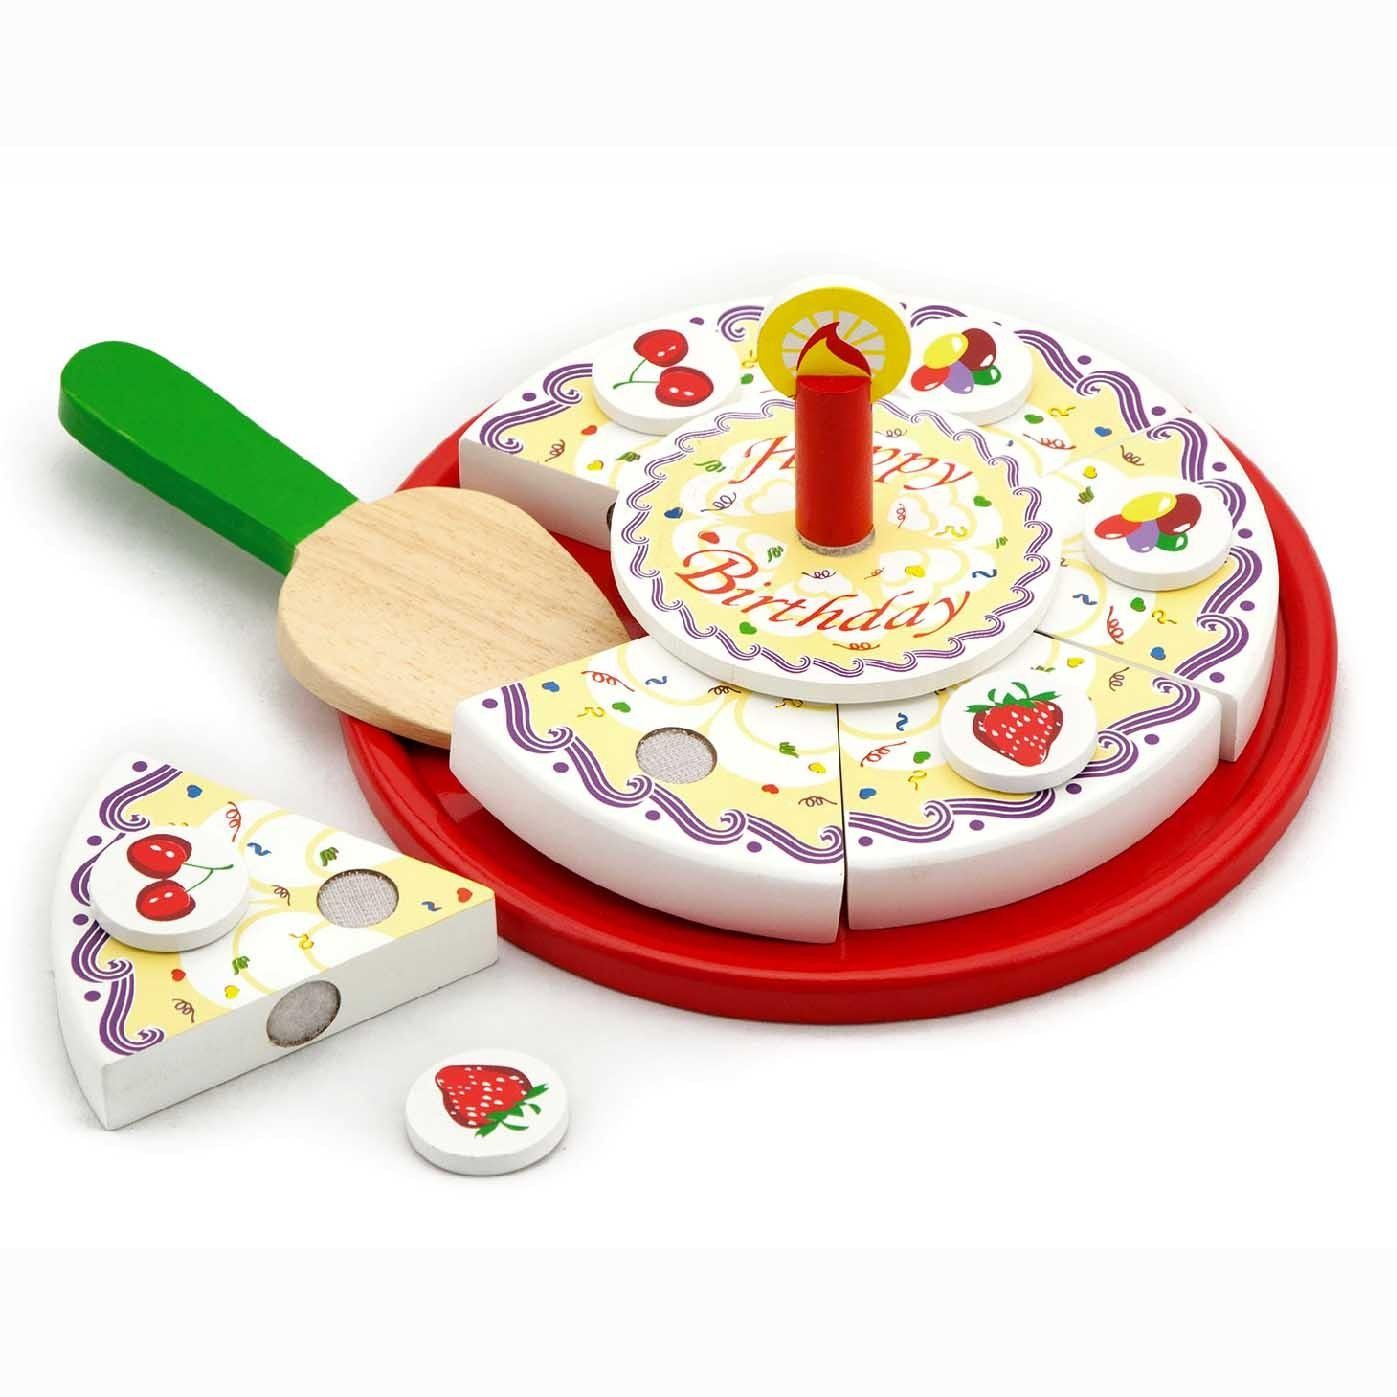 Removable candle & decorations, hand painted and exellent finishing. Wooden spatula included and tray included. Size: D230 x 35 mm 18 months +  www.kidswoodentoyshop.co.uk